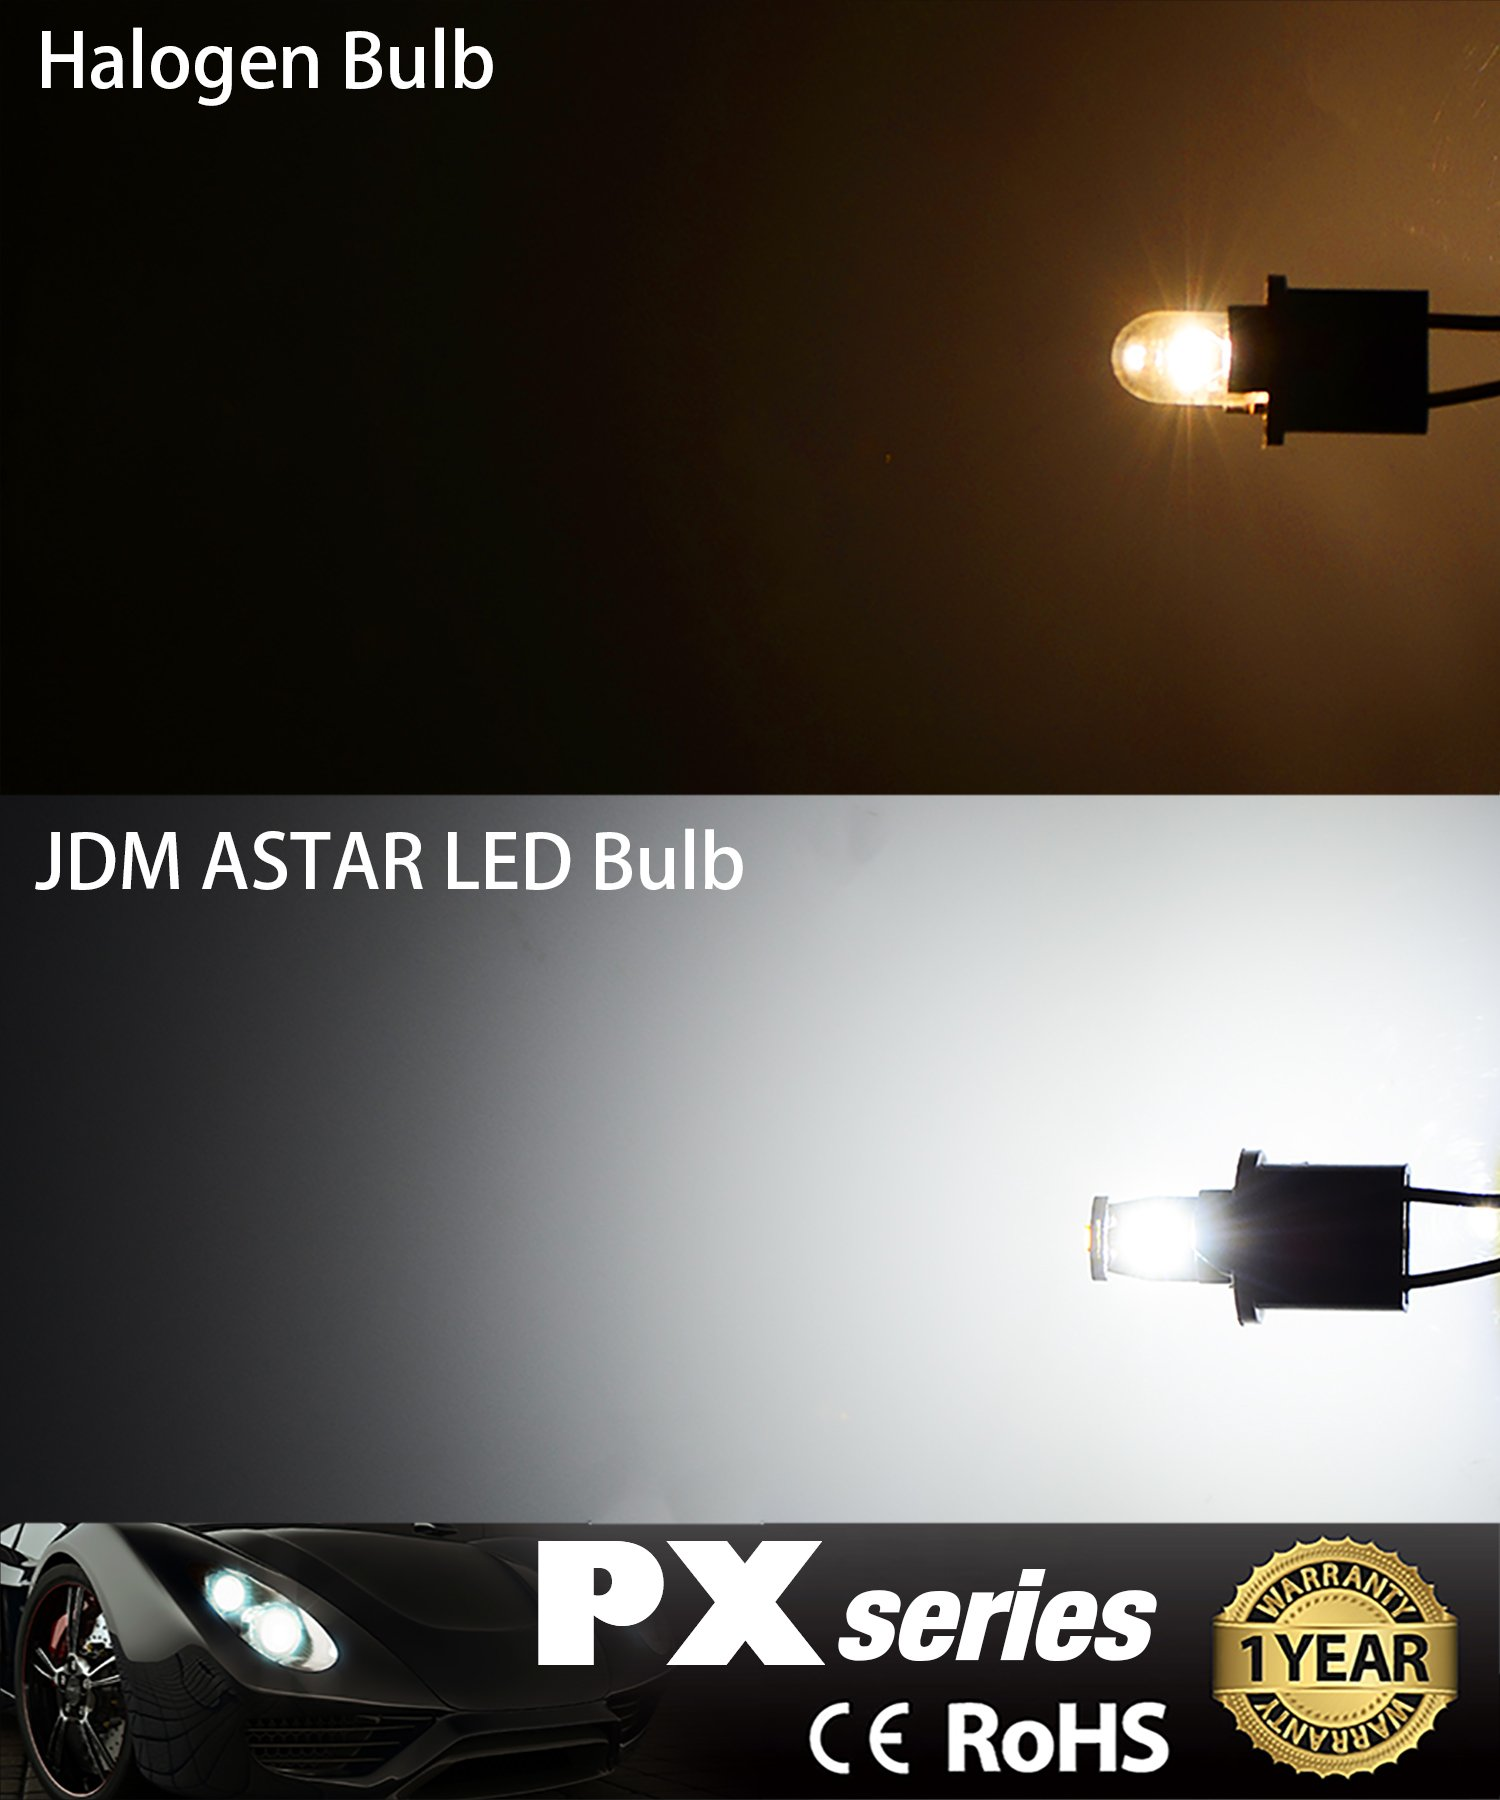 JDM ASTAR 10pcs Super Bright 194 168 175 2825 T10 PX Chipsets LED Bulbs,Xenon White (Best Value on the market) by JDM ASTAR (Image #3)